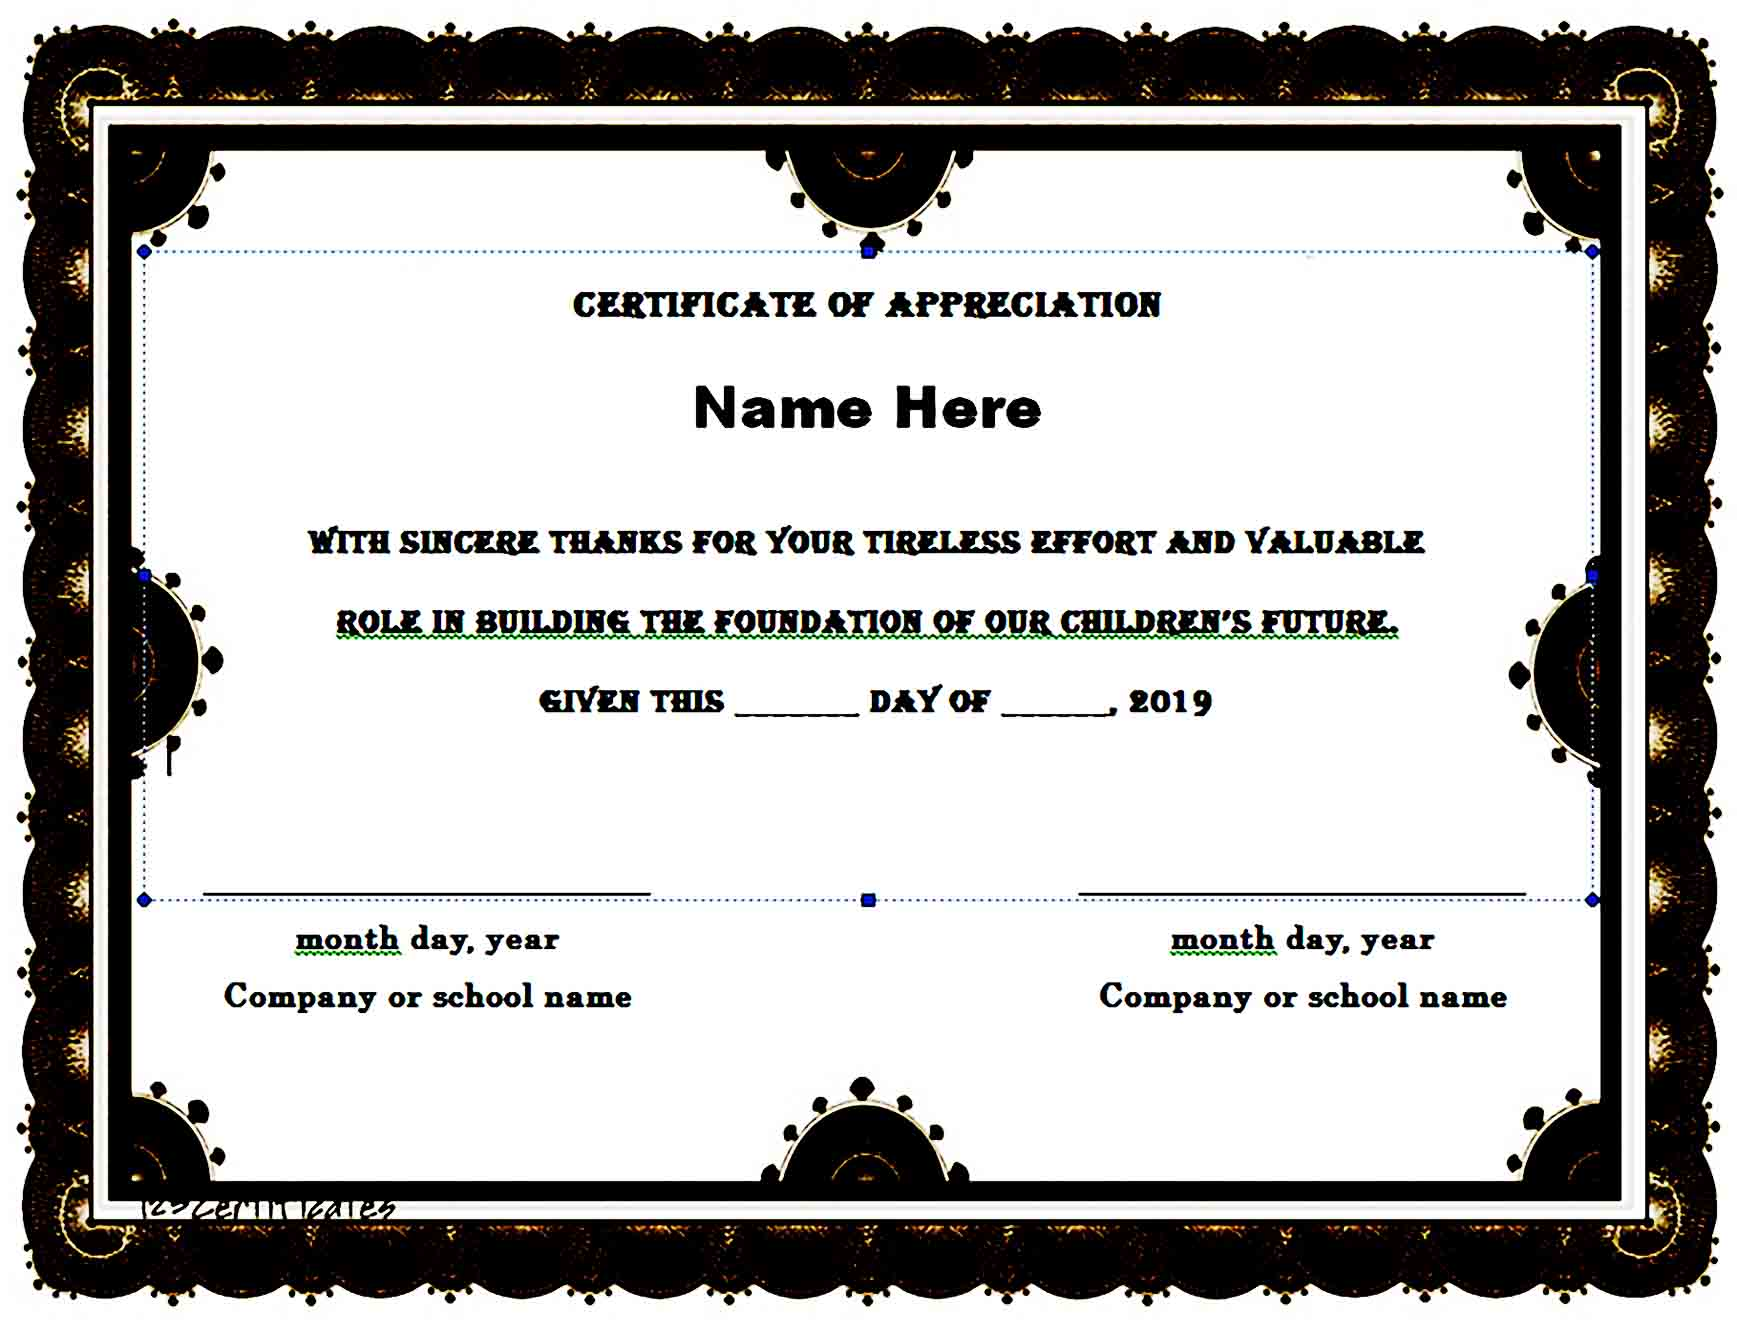 Certificate of Appreciation 03